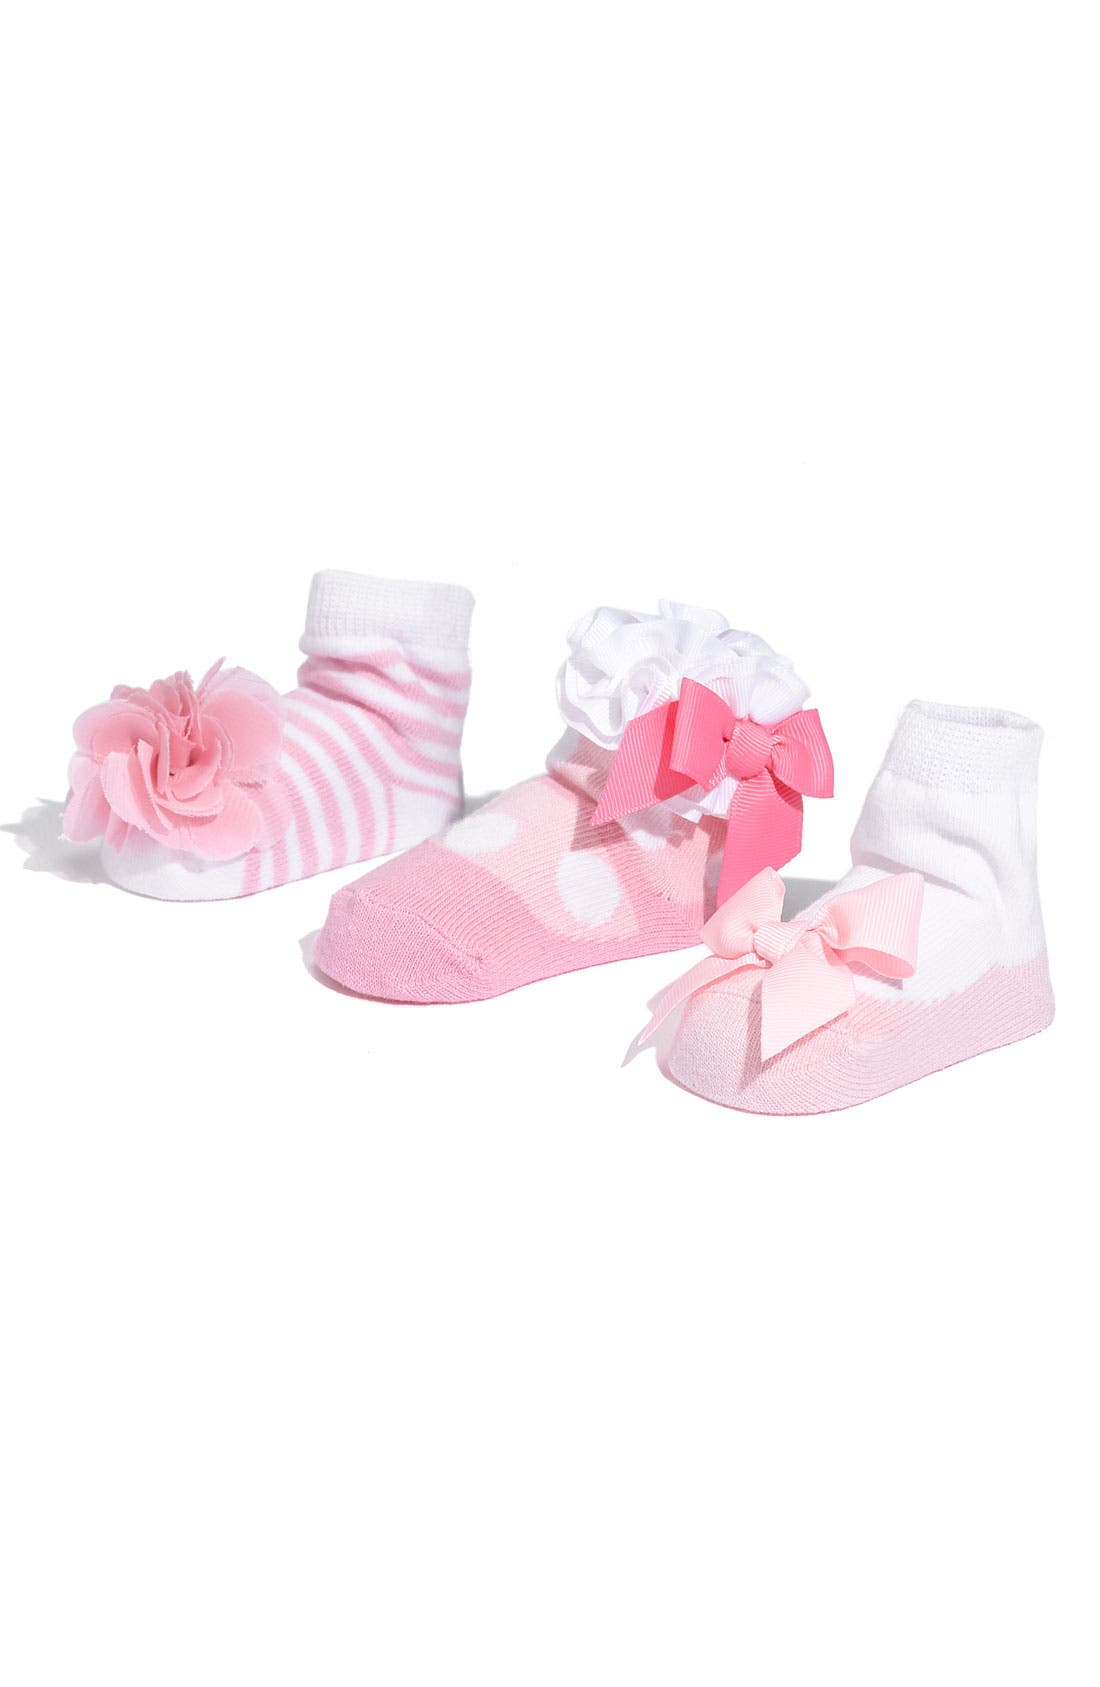 Mud Pie Socks Set (3-Pack)(Baby Girls)